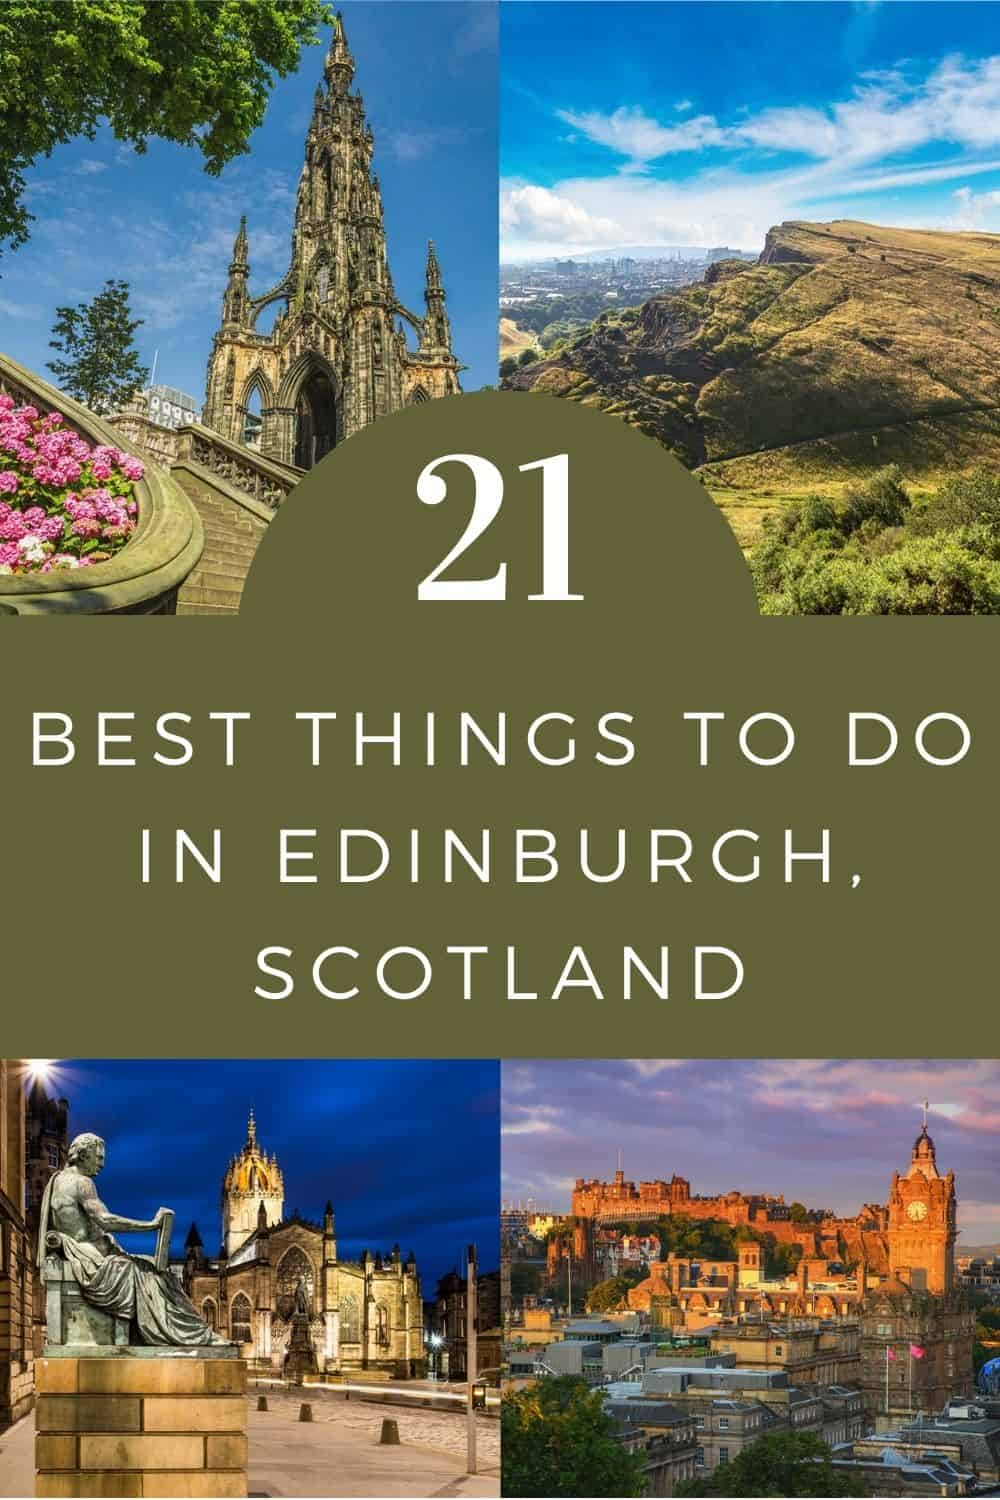 21 top things to do in Edinburgh, Scotland for the first time visitor